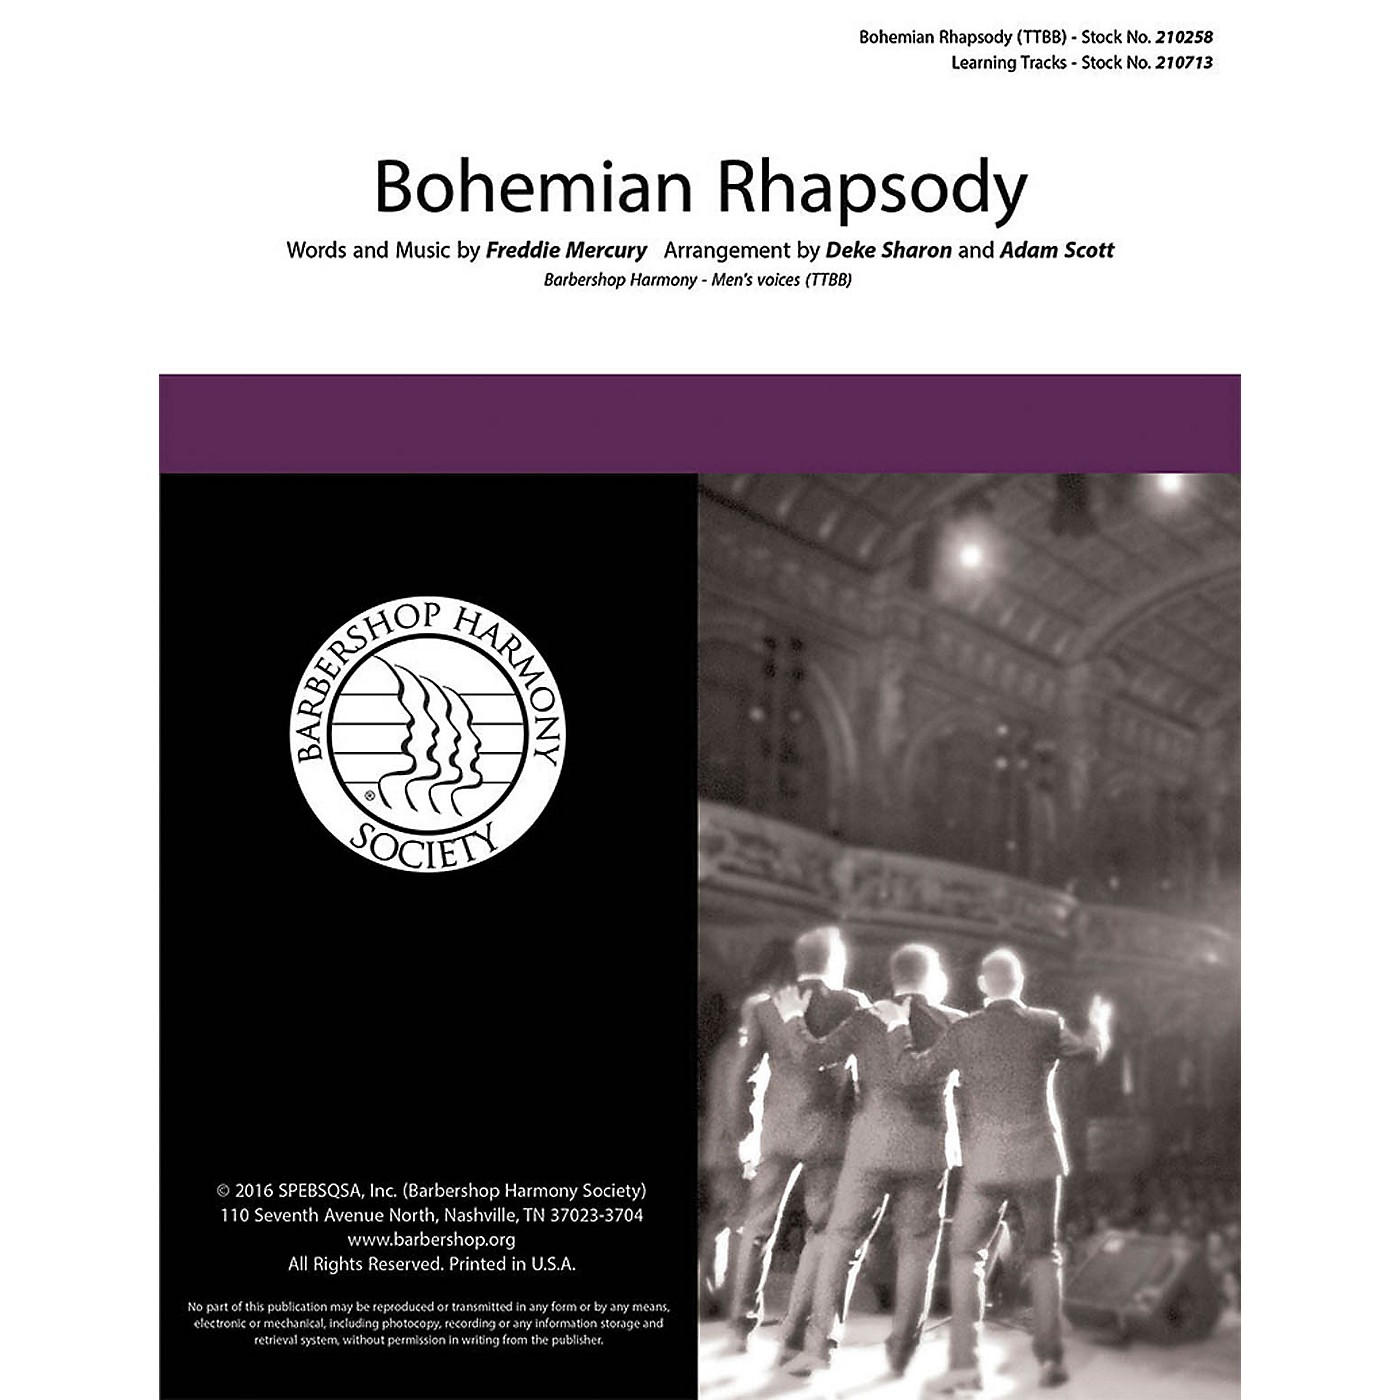 Barbershop Harmony Society Bohemian Rhapsody TTBB A Cappella by Queen arranged by Deke Sharon thumbnail